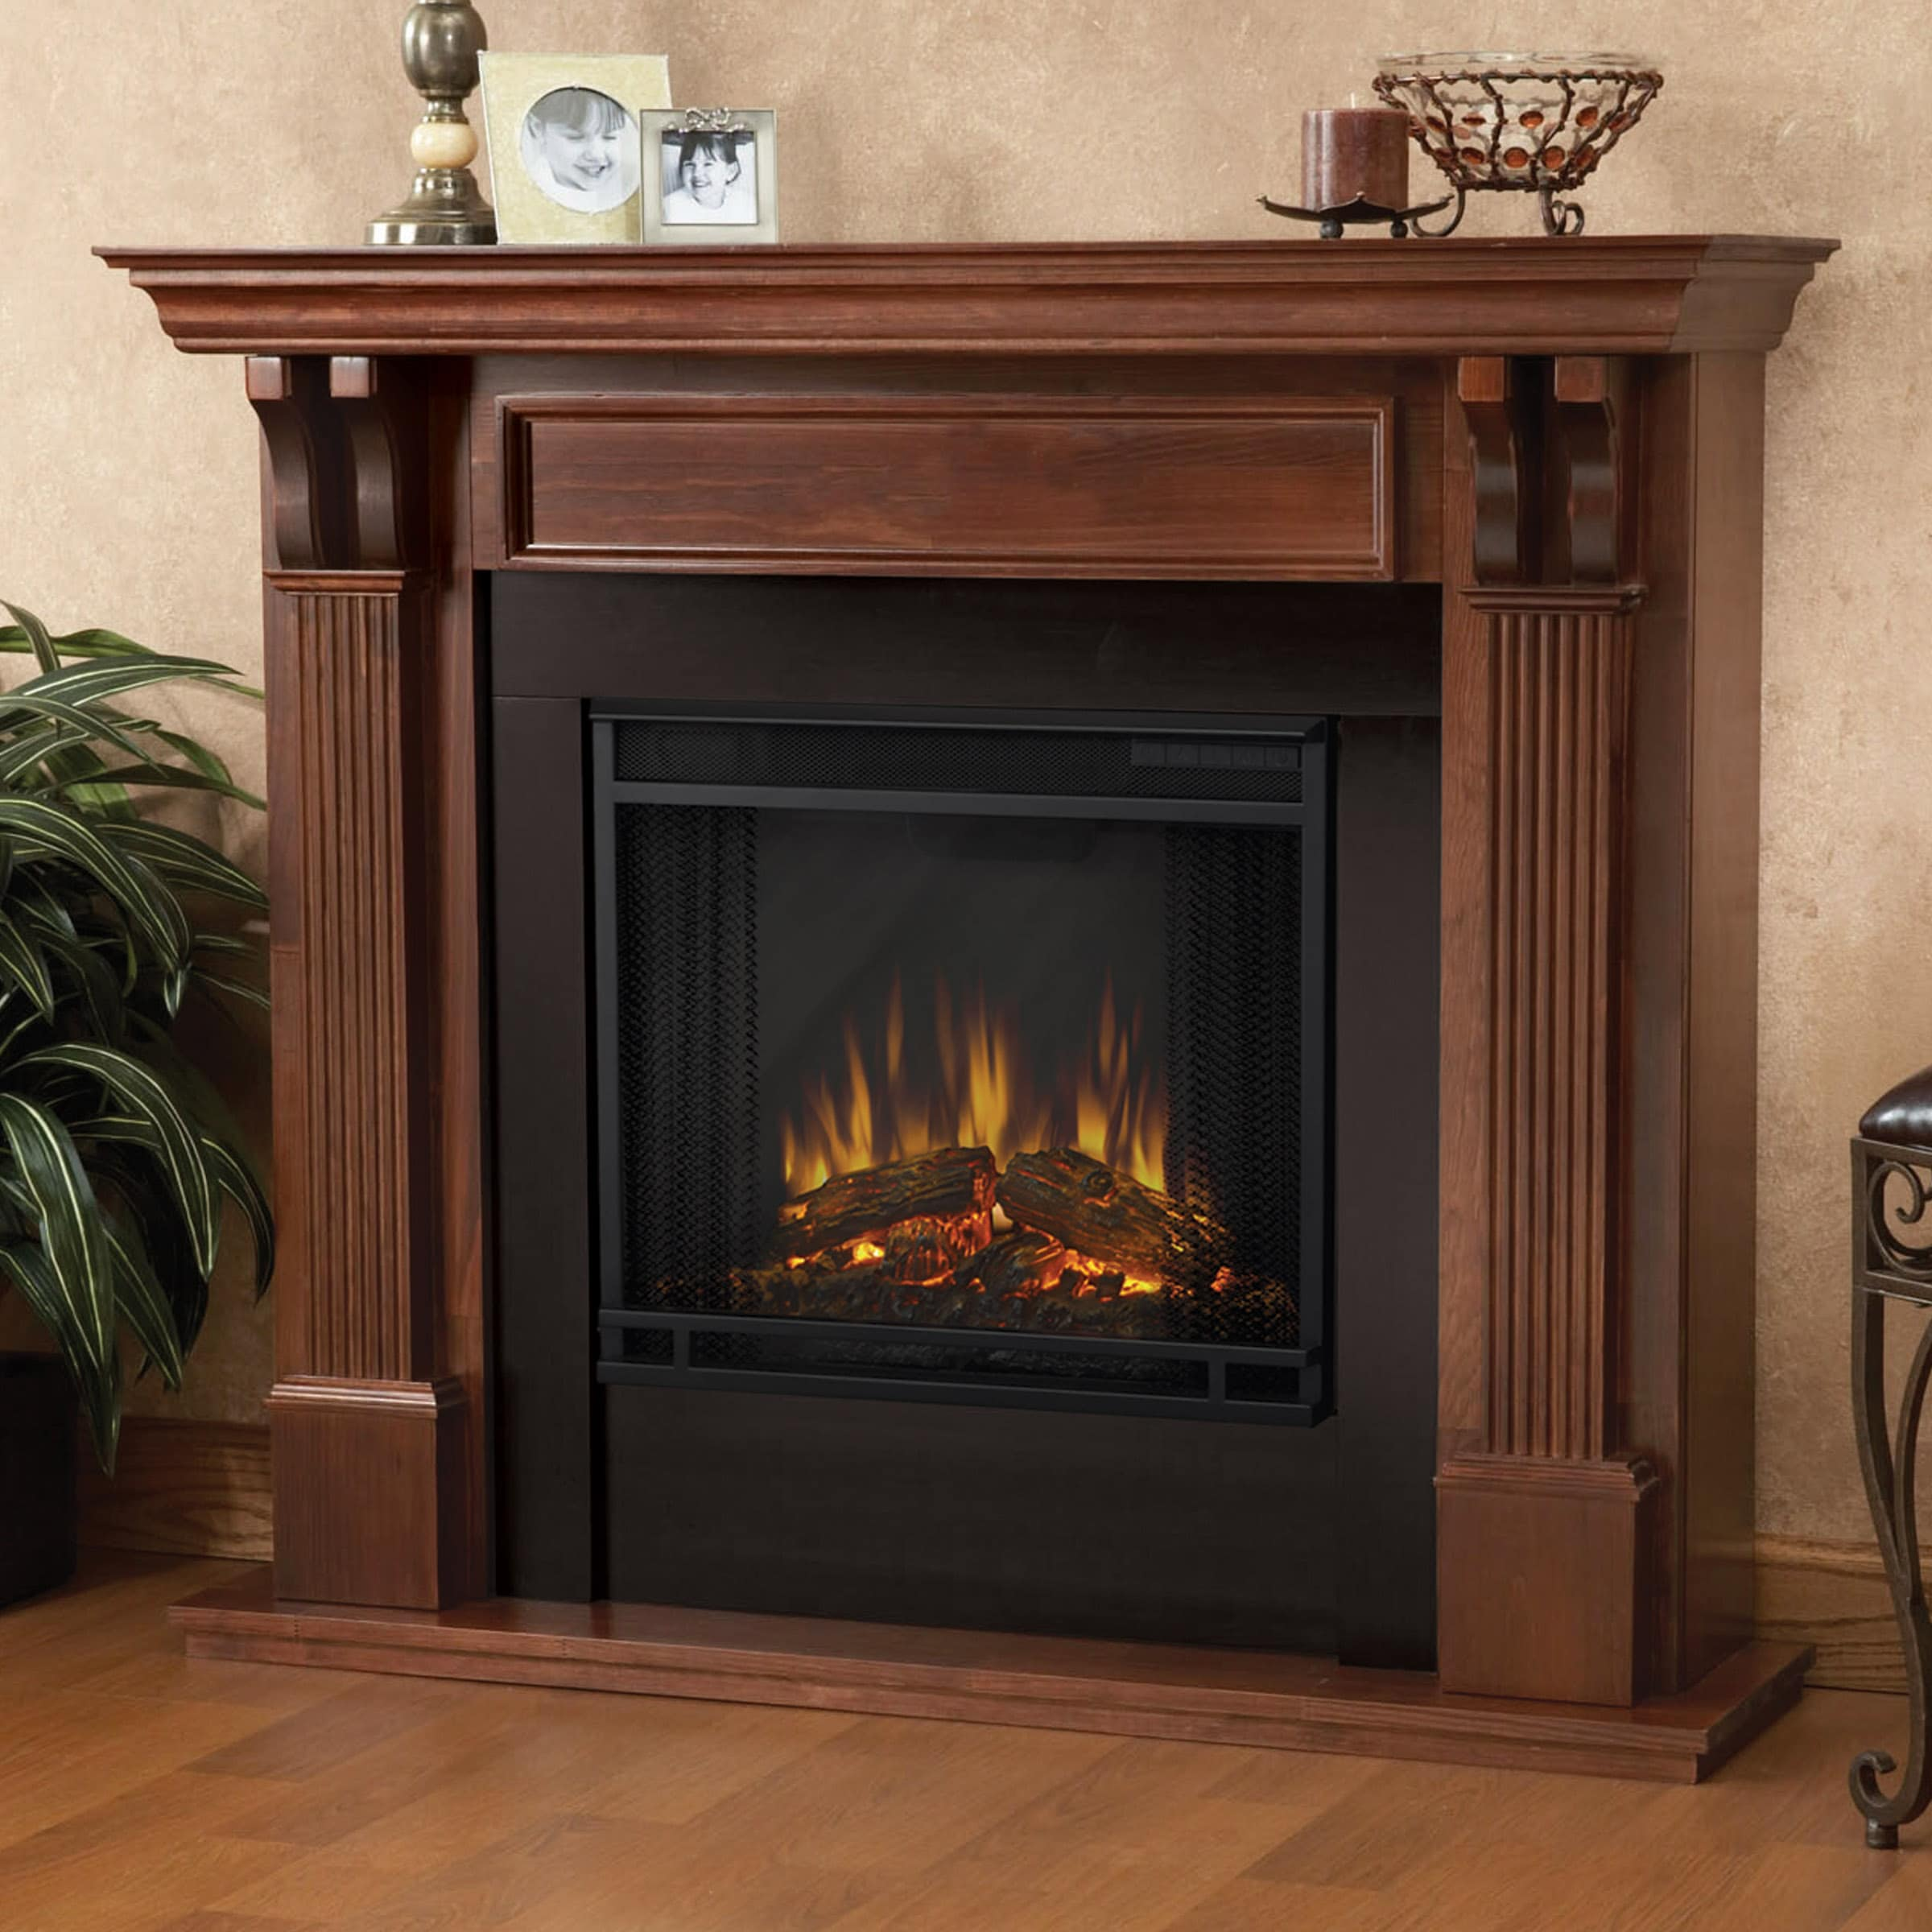 Real Flame Mahogany Finish Electric Fireplace at Sears.com